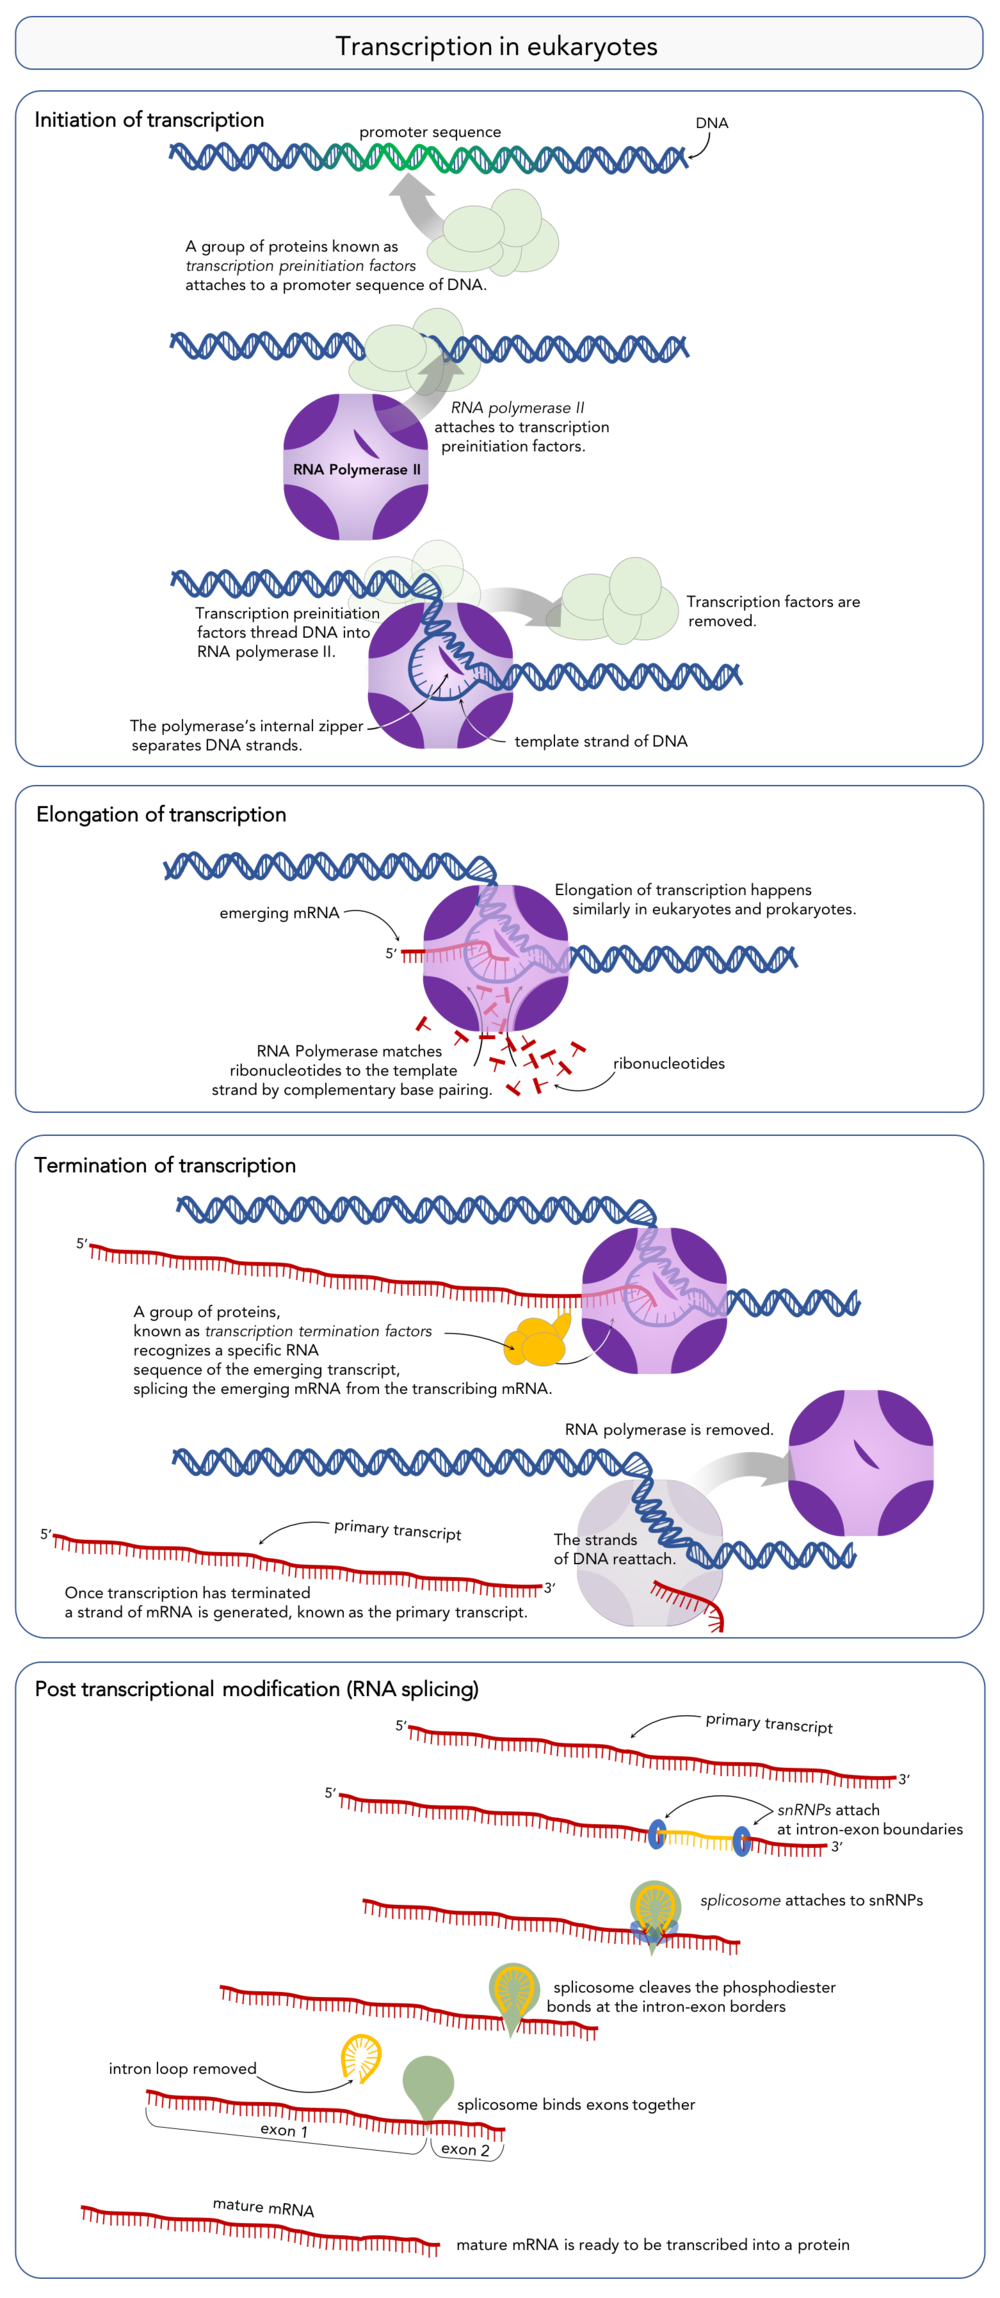 Figure 10.   Steps of transcription in eukaryotes and RNA splicing.